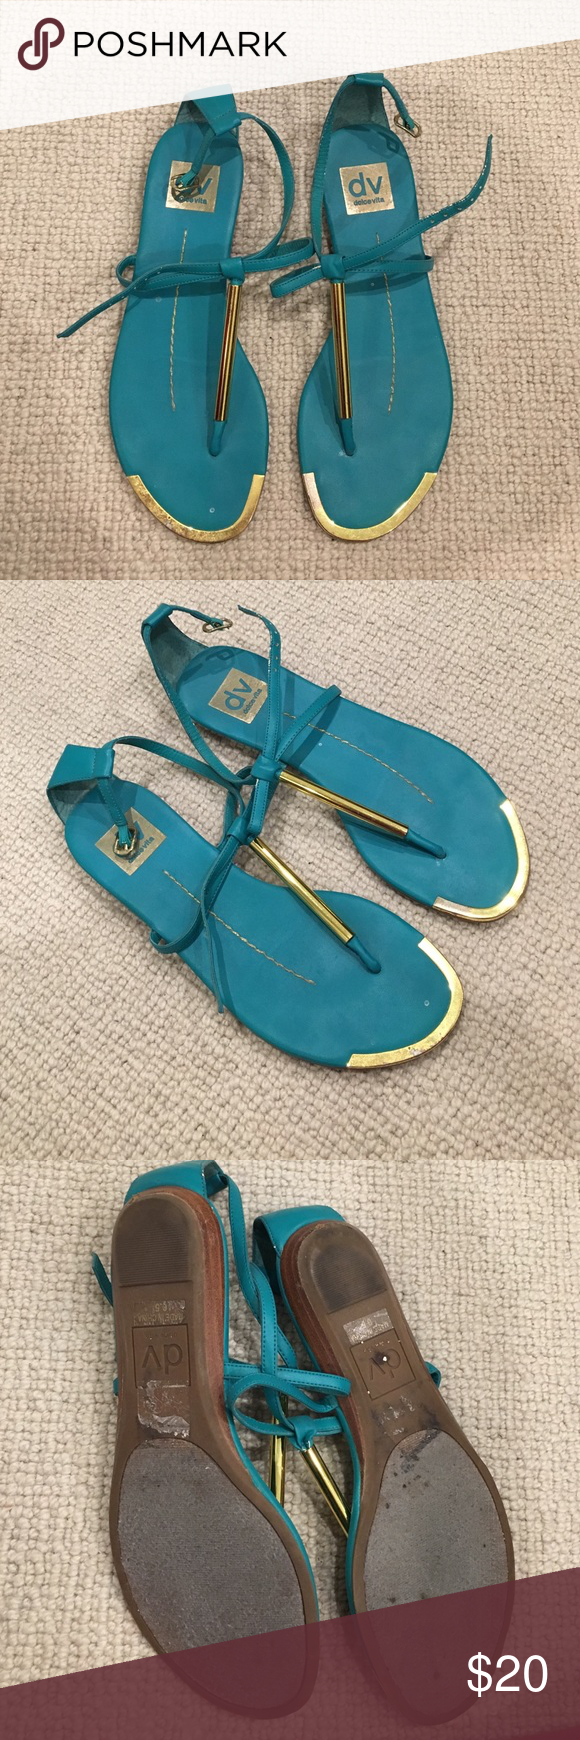 Dolce Vita turquoise sandals size 6.5 Dolce Vita turquoise sandals with gold detail size 6.5 Dolce Vita Shoes Sandals